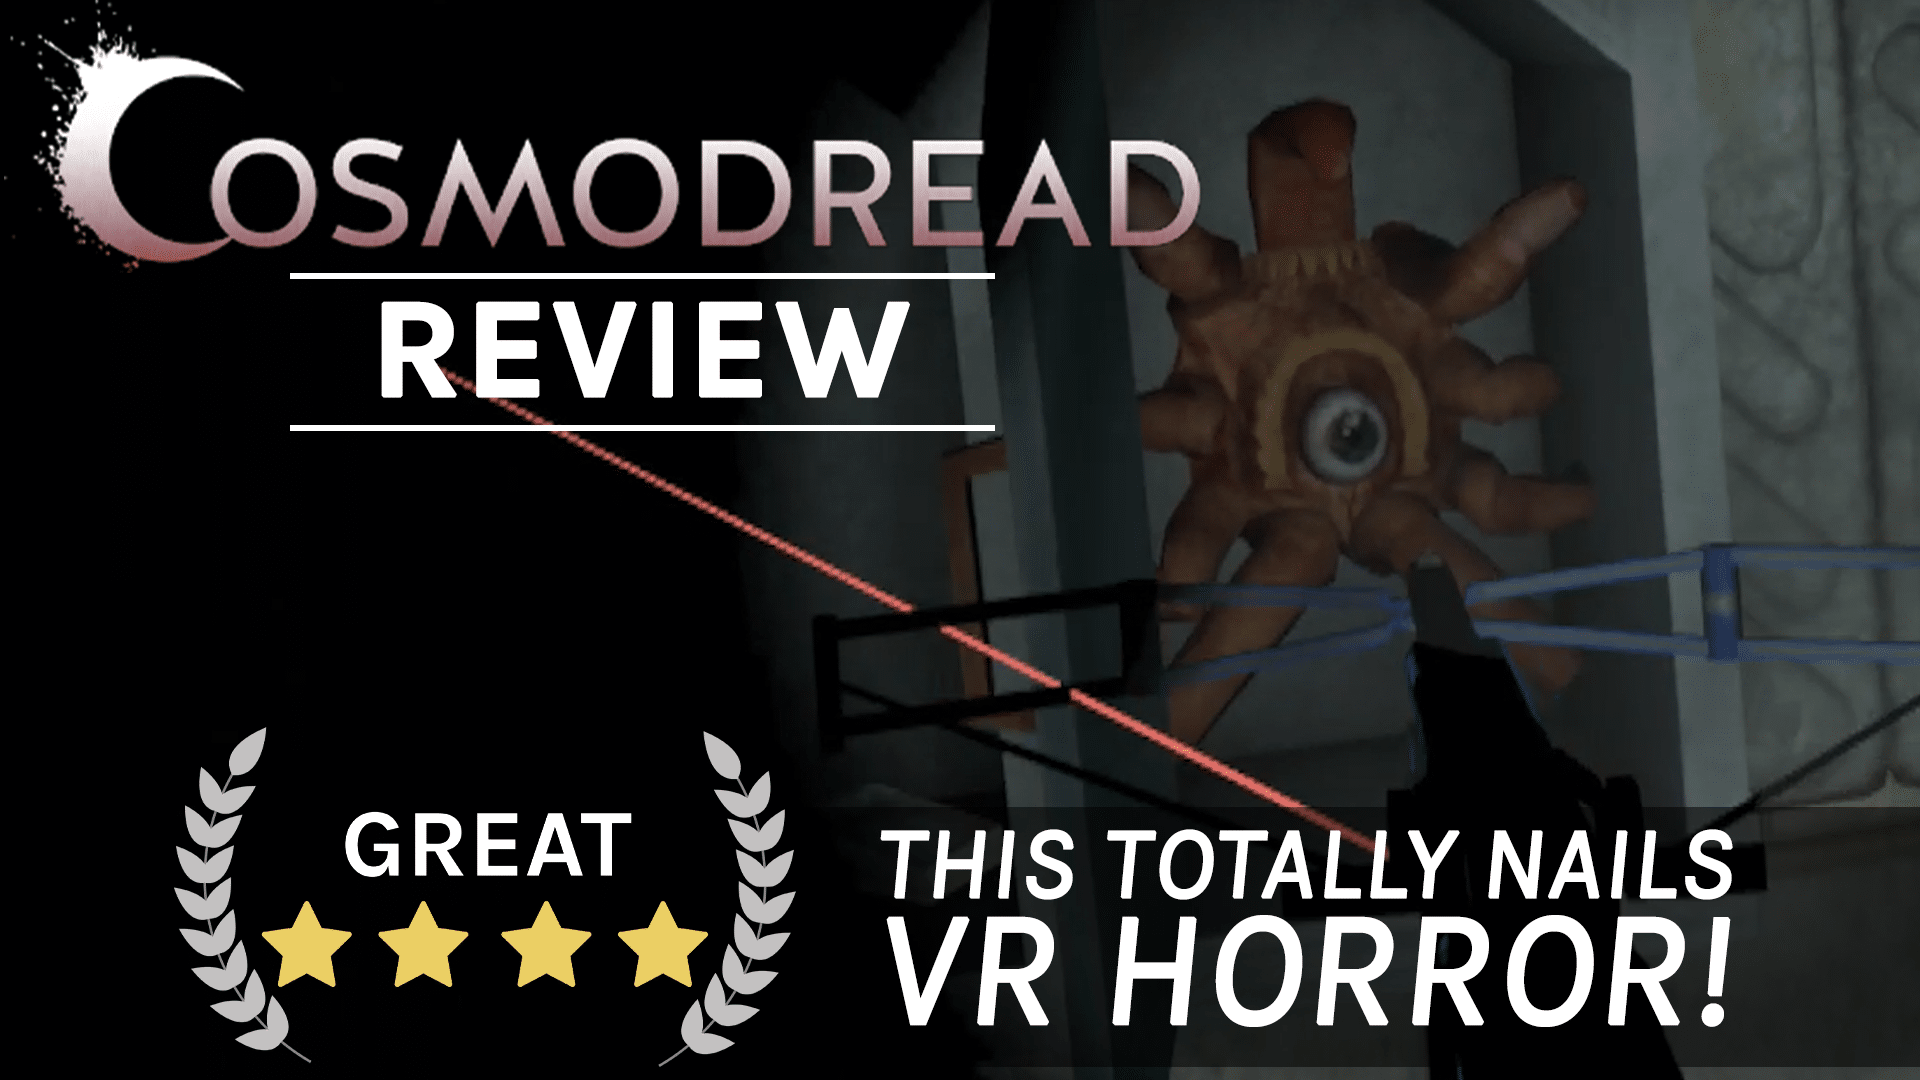 cosmodread review